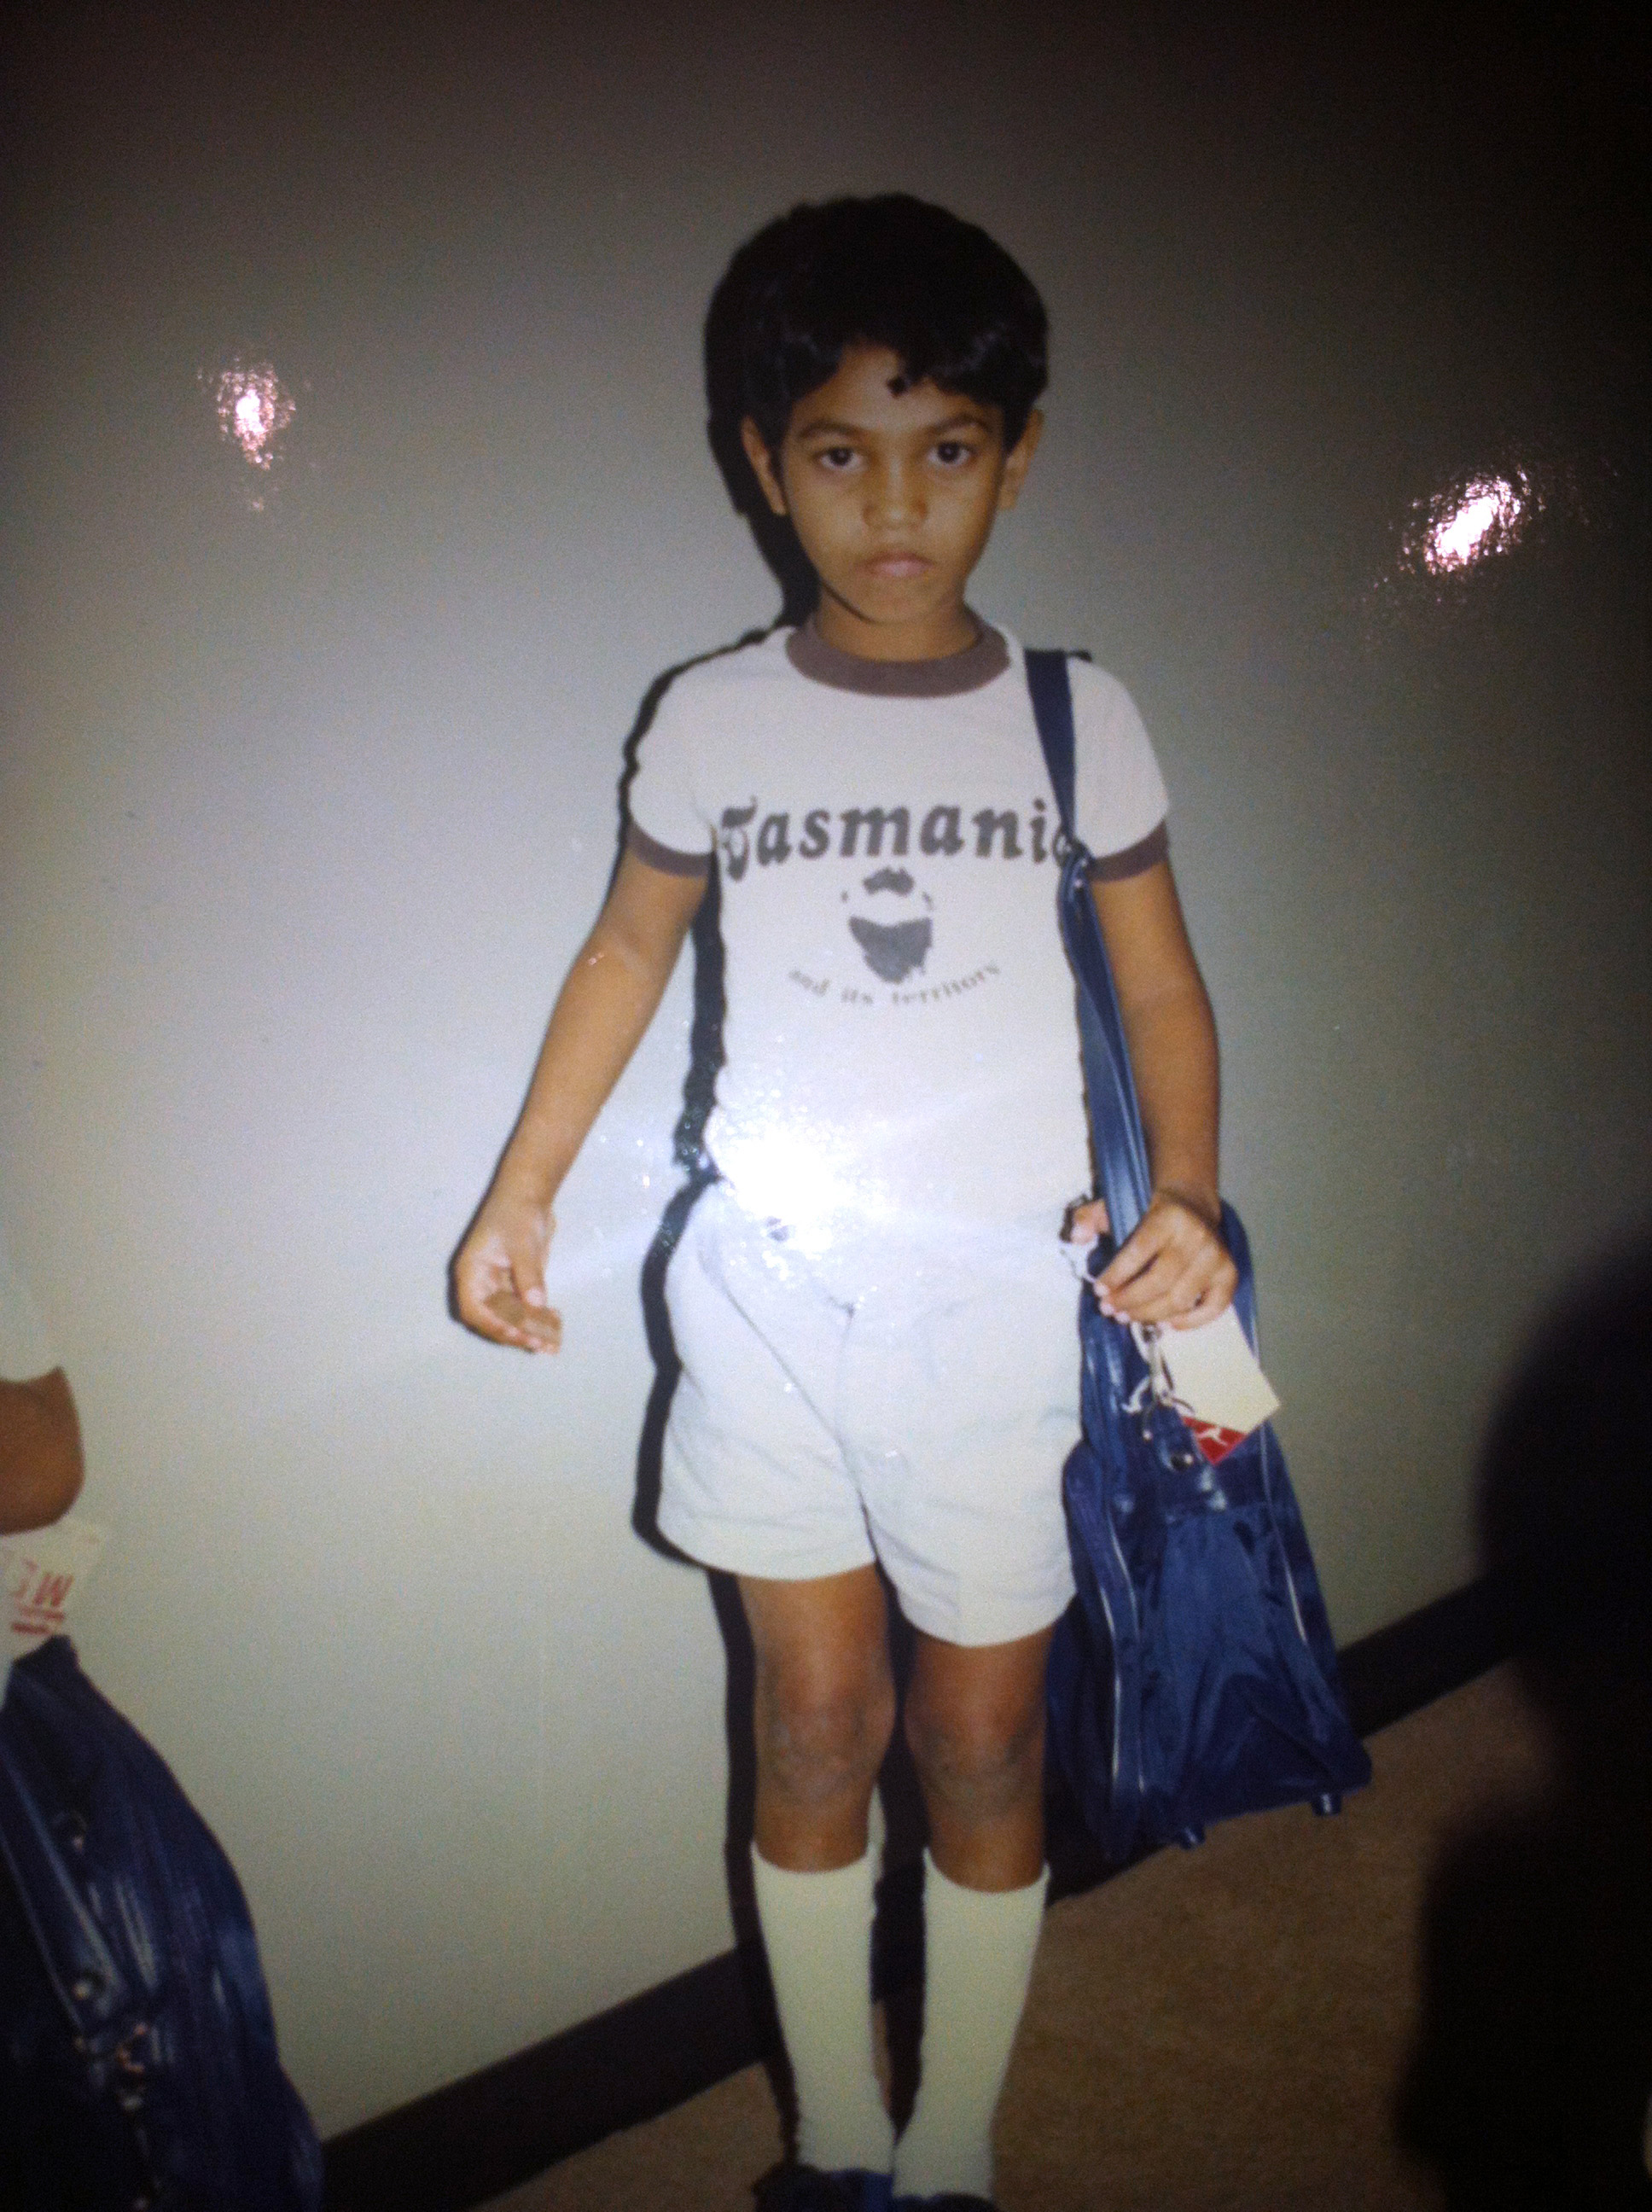 This undated photo provided by Saroo Brierley shows him as a young boy in Australia. In February 2012, Brierley, 30, reunited with his biological mother, Fatima Munshi, in Khandwa, India, 25 years after an ill-fated train ride left him an orphan on the streets of Calcutta. Brierley will appear at this year's RootsTech, scheduled for Feb. 27-March 2 at the Salt Palace Convention Center.